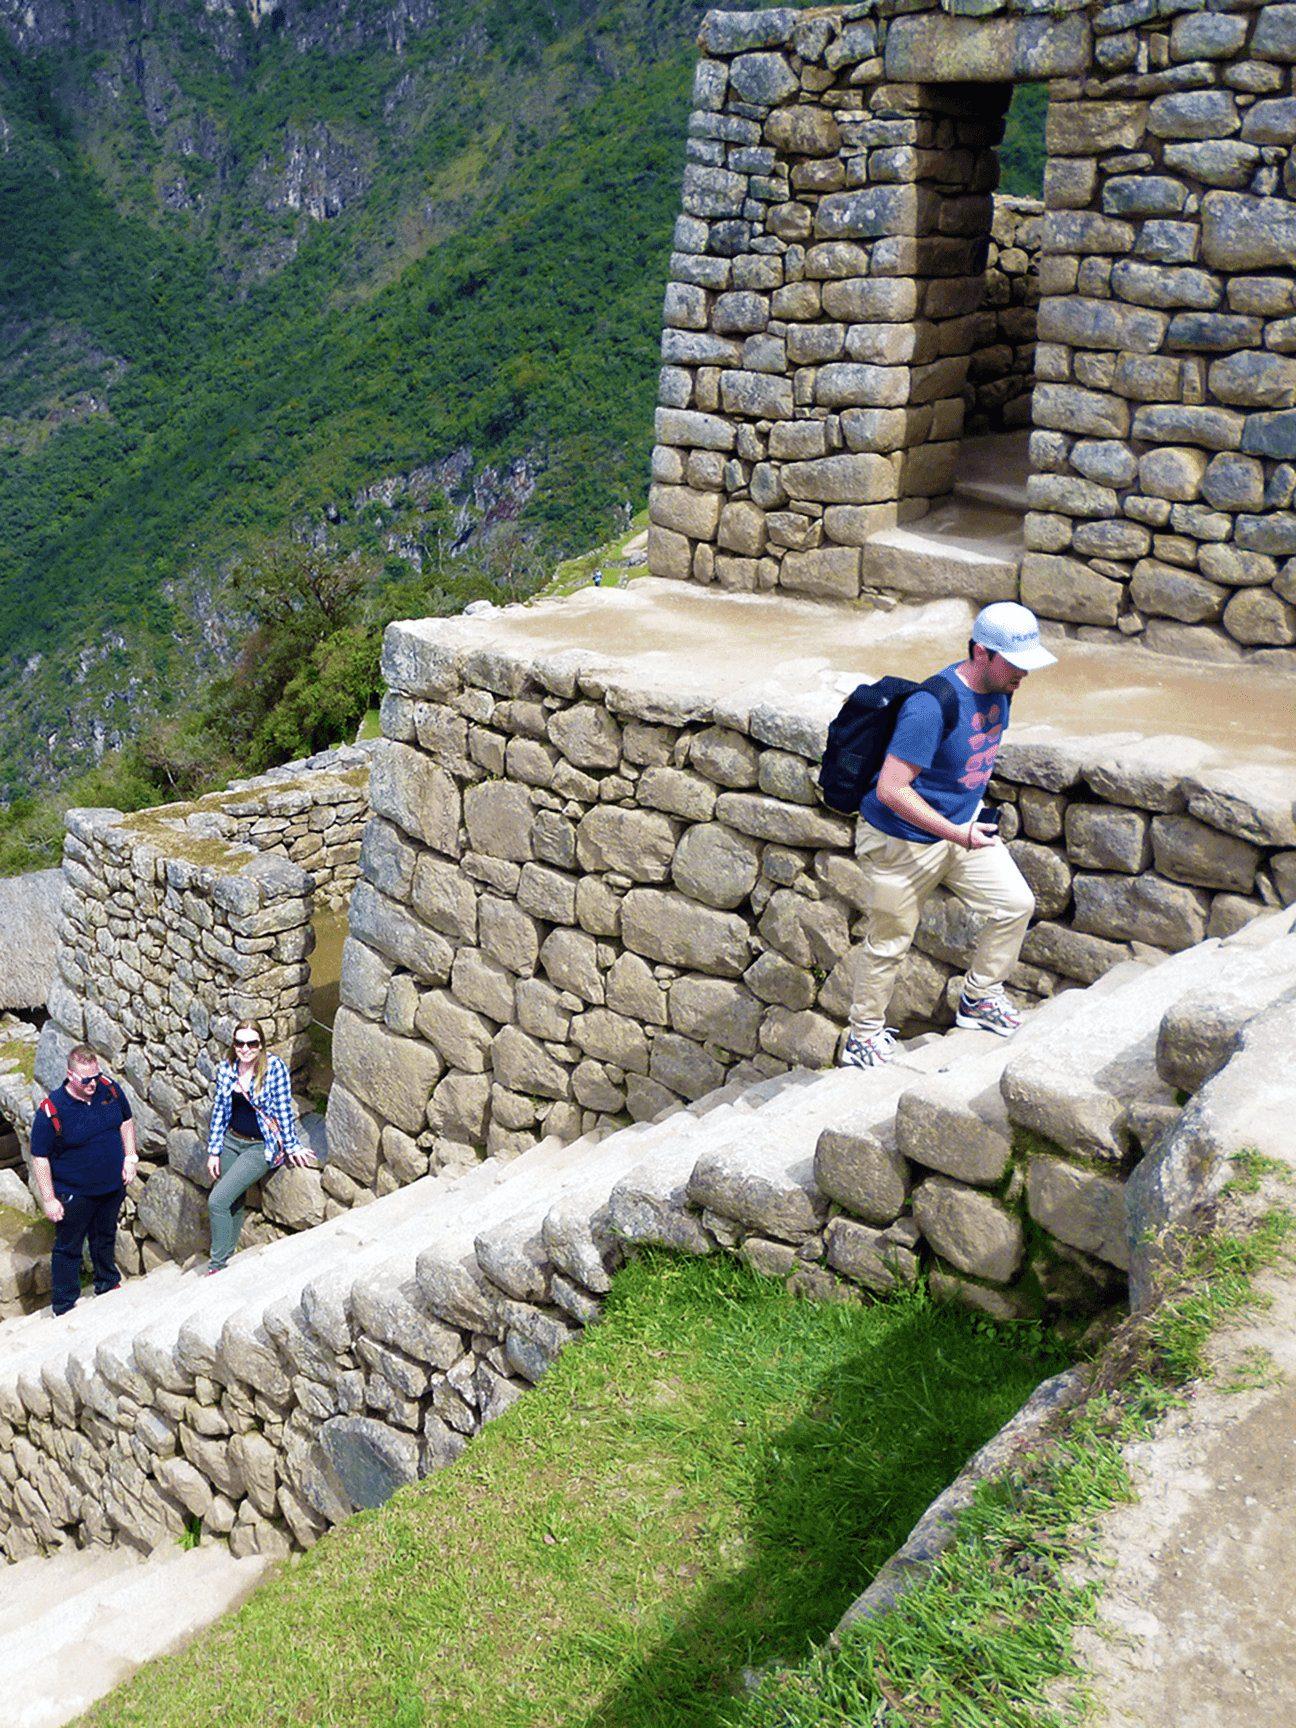 Reaching your daily step count won't be a problem at Machu Picchu